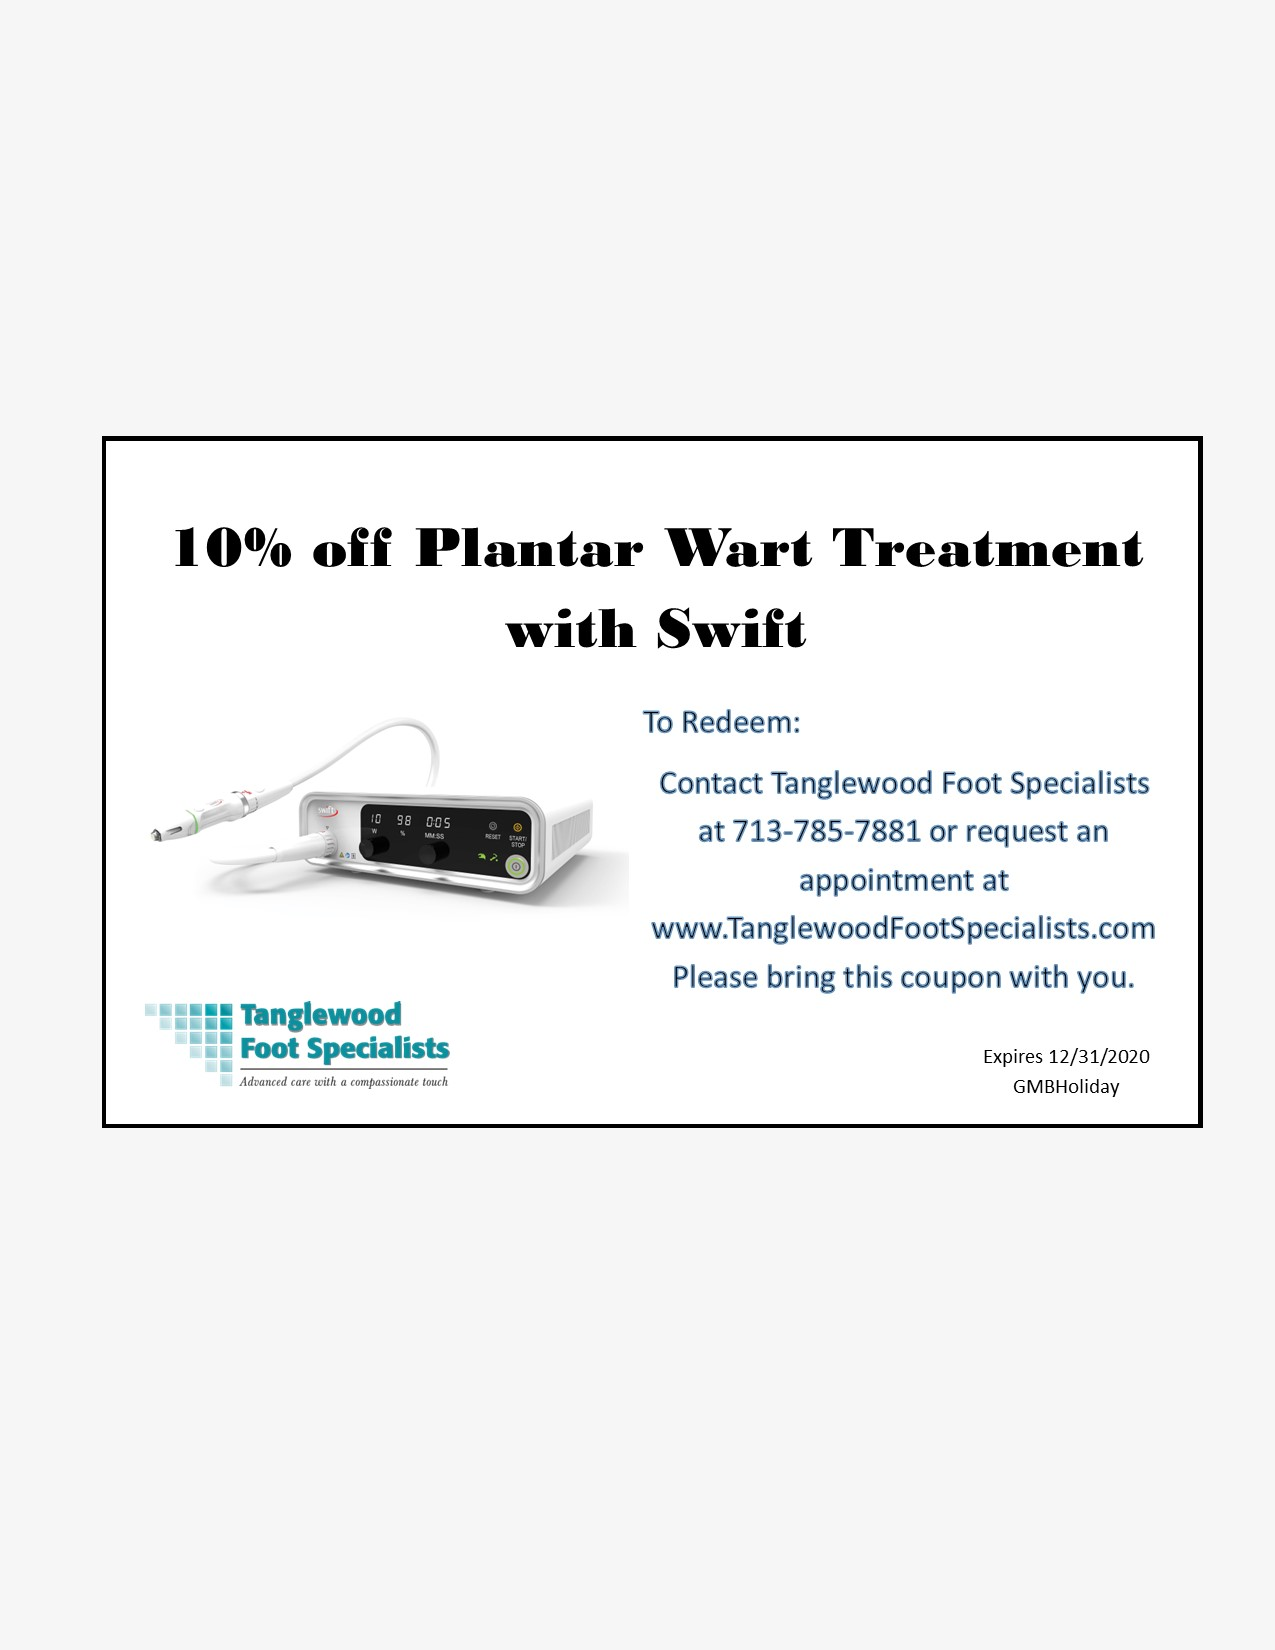 Houston podiatrist is offerring 10% off Swift Treatment for Plantar Warts